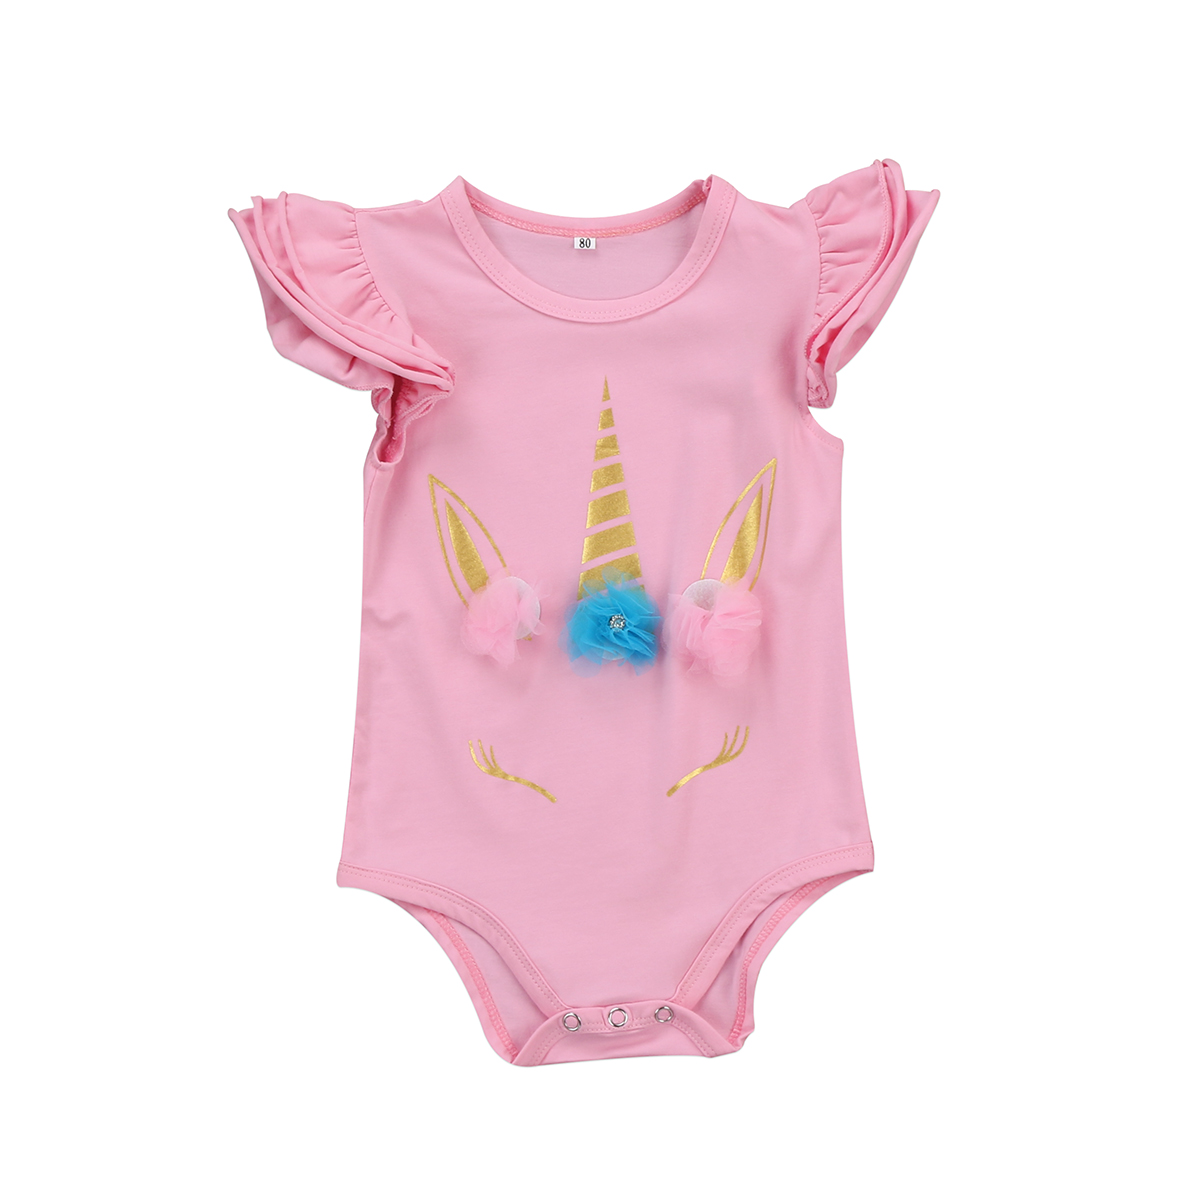 Unicorn Printed Infant Baby Girls Romper Floral Sunsuit Summer Clothes Outfits